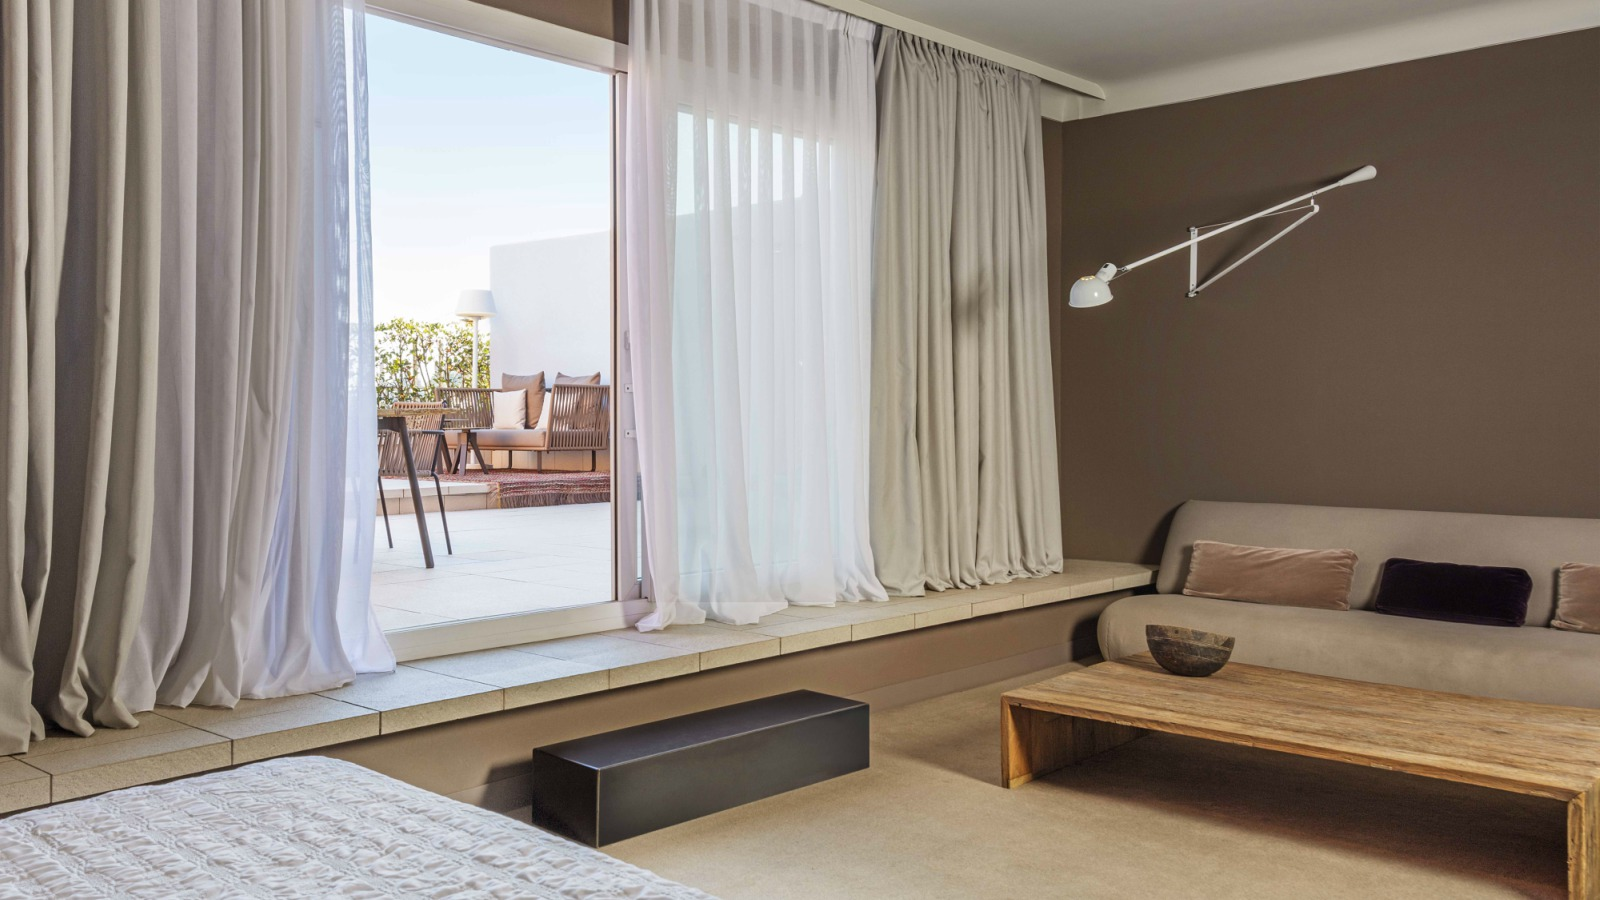 Grand Terrace Suite à Le Méridien Barcelona